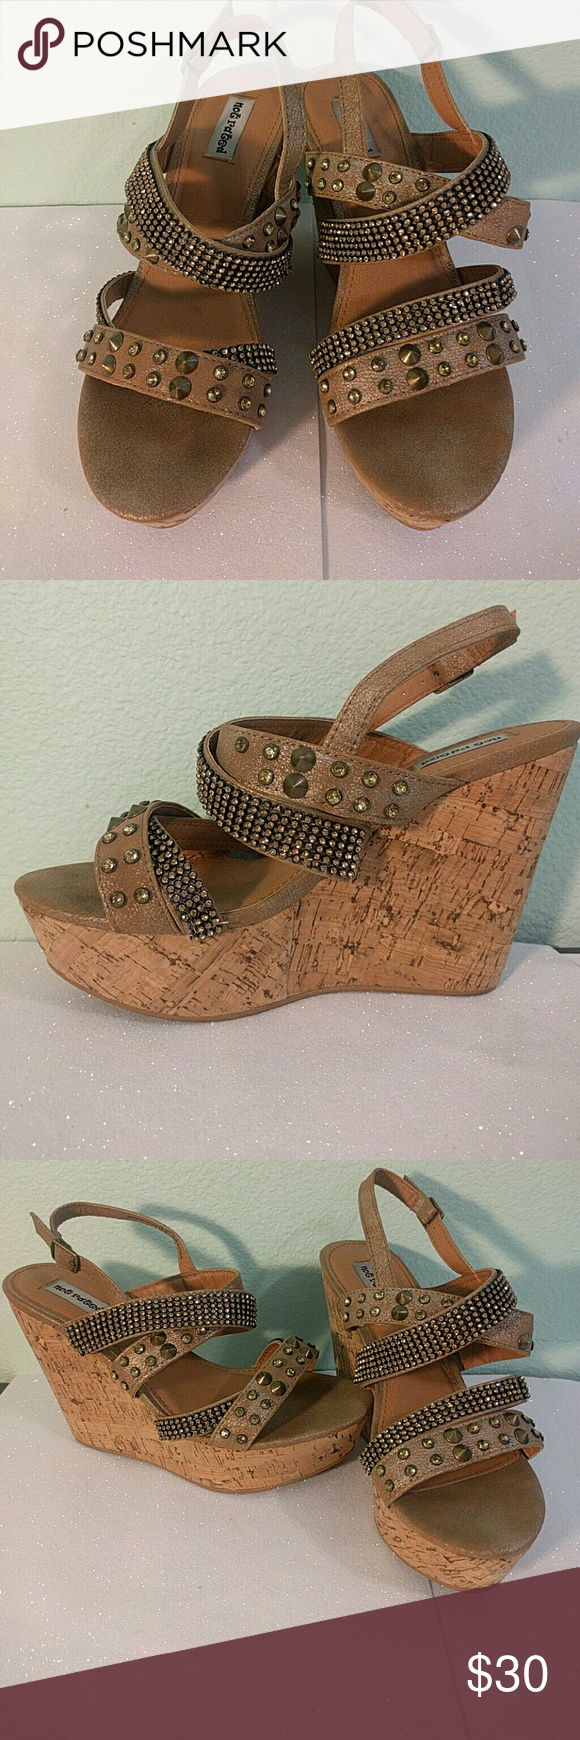 Bedazzled Tan Wedges Very flashy cute wedges Only worn once Not Rated Shoes Wedges #shoewedges